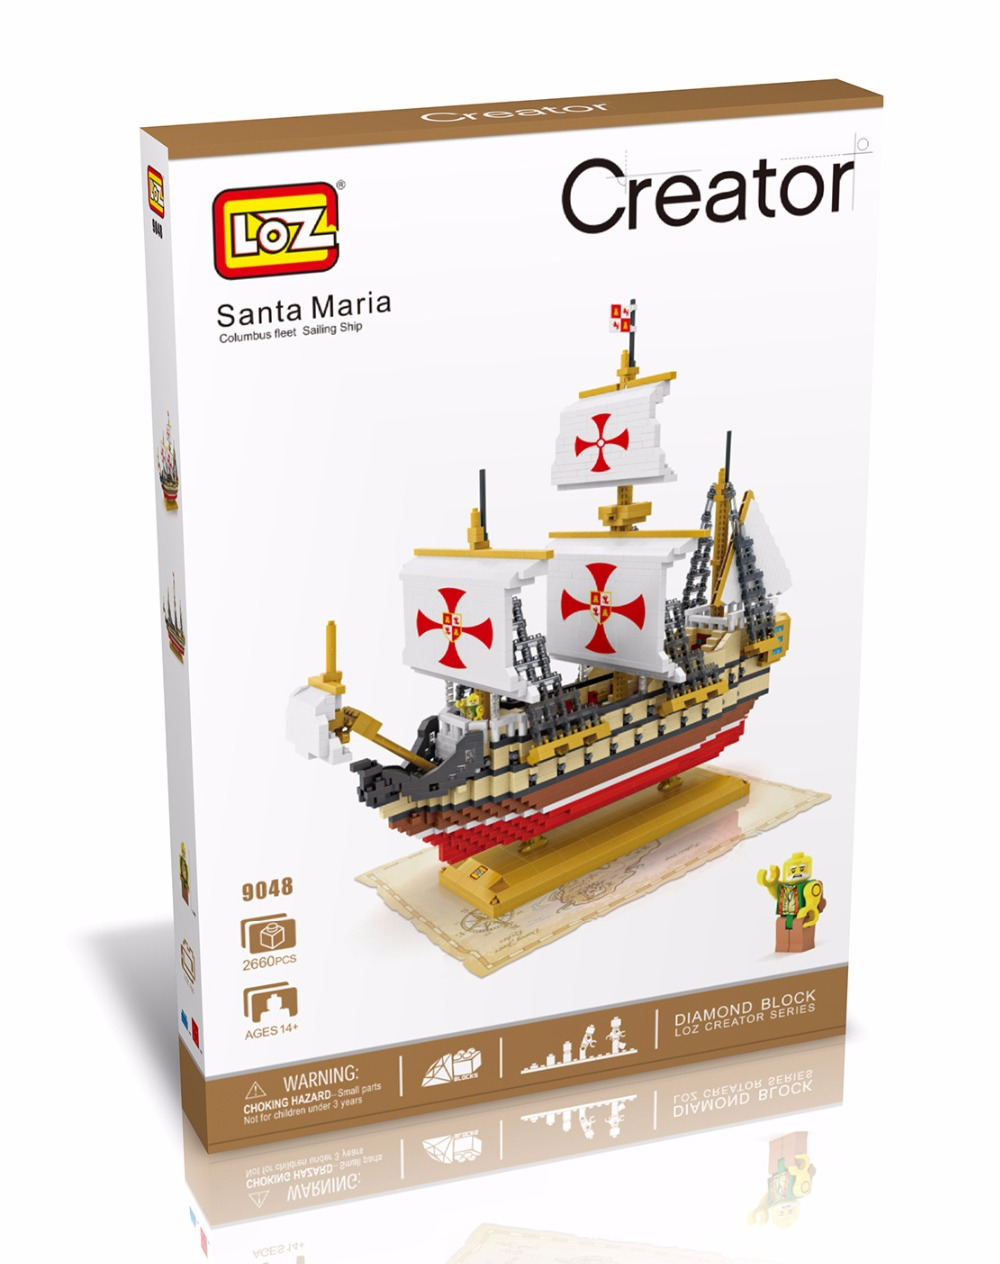 LOZ Diamond Blocks Santa Maria DIY Building Toys Columbus Fleet Sailing Ship Educational Blocks for Children Gifts 9048 supra is 2740